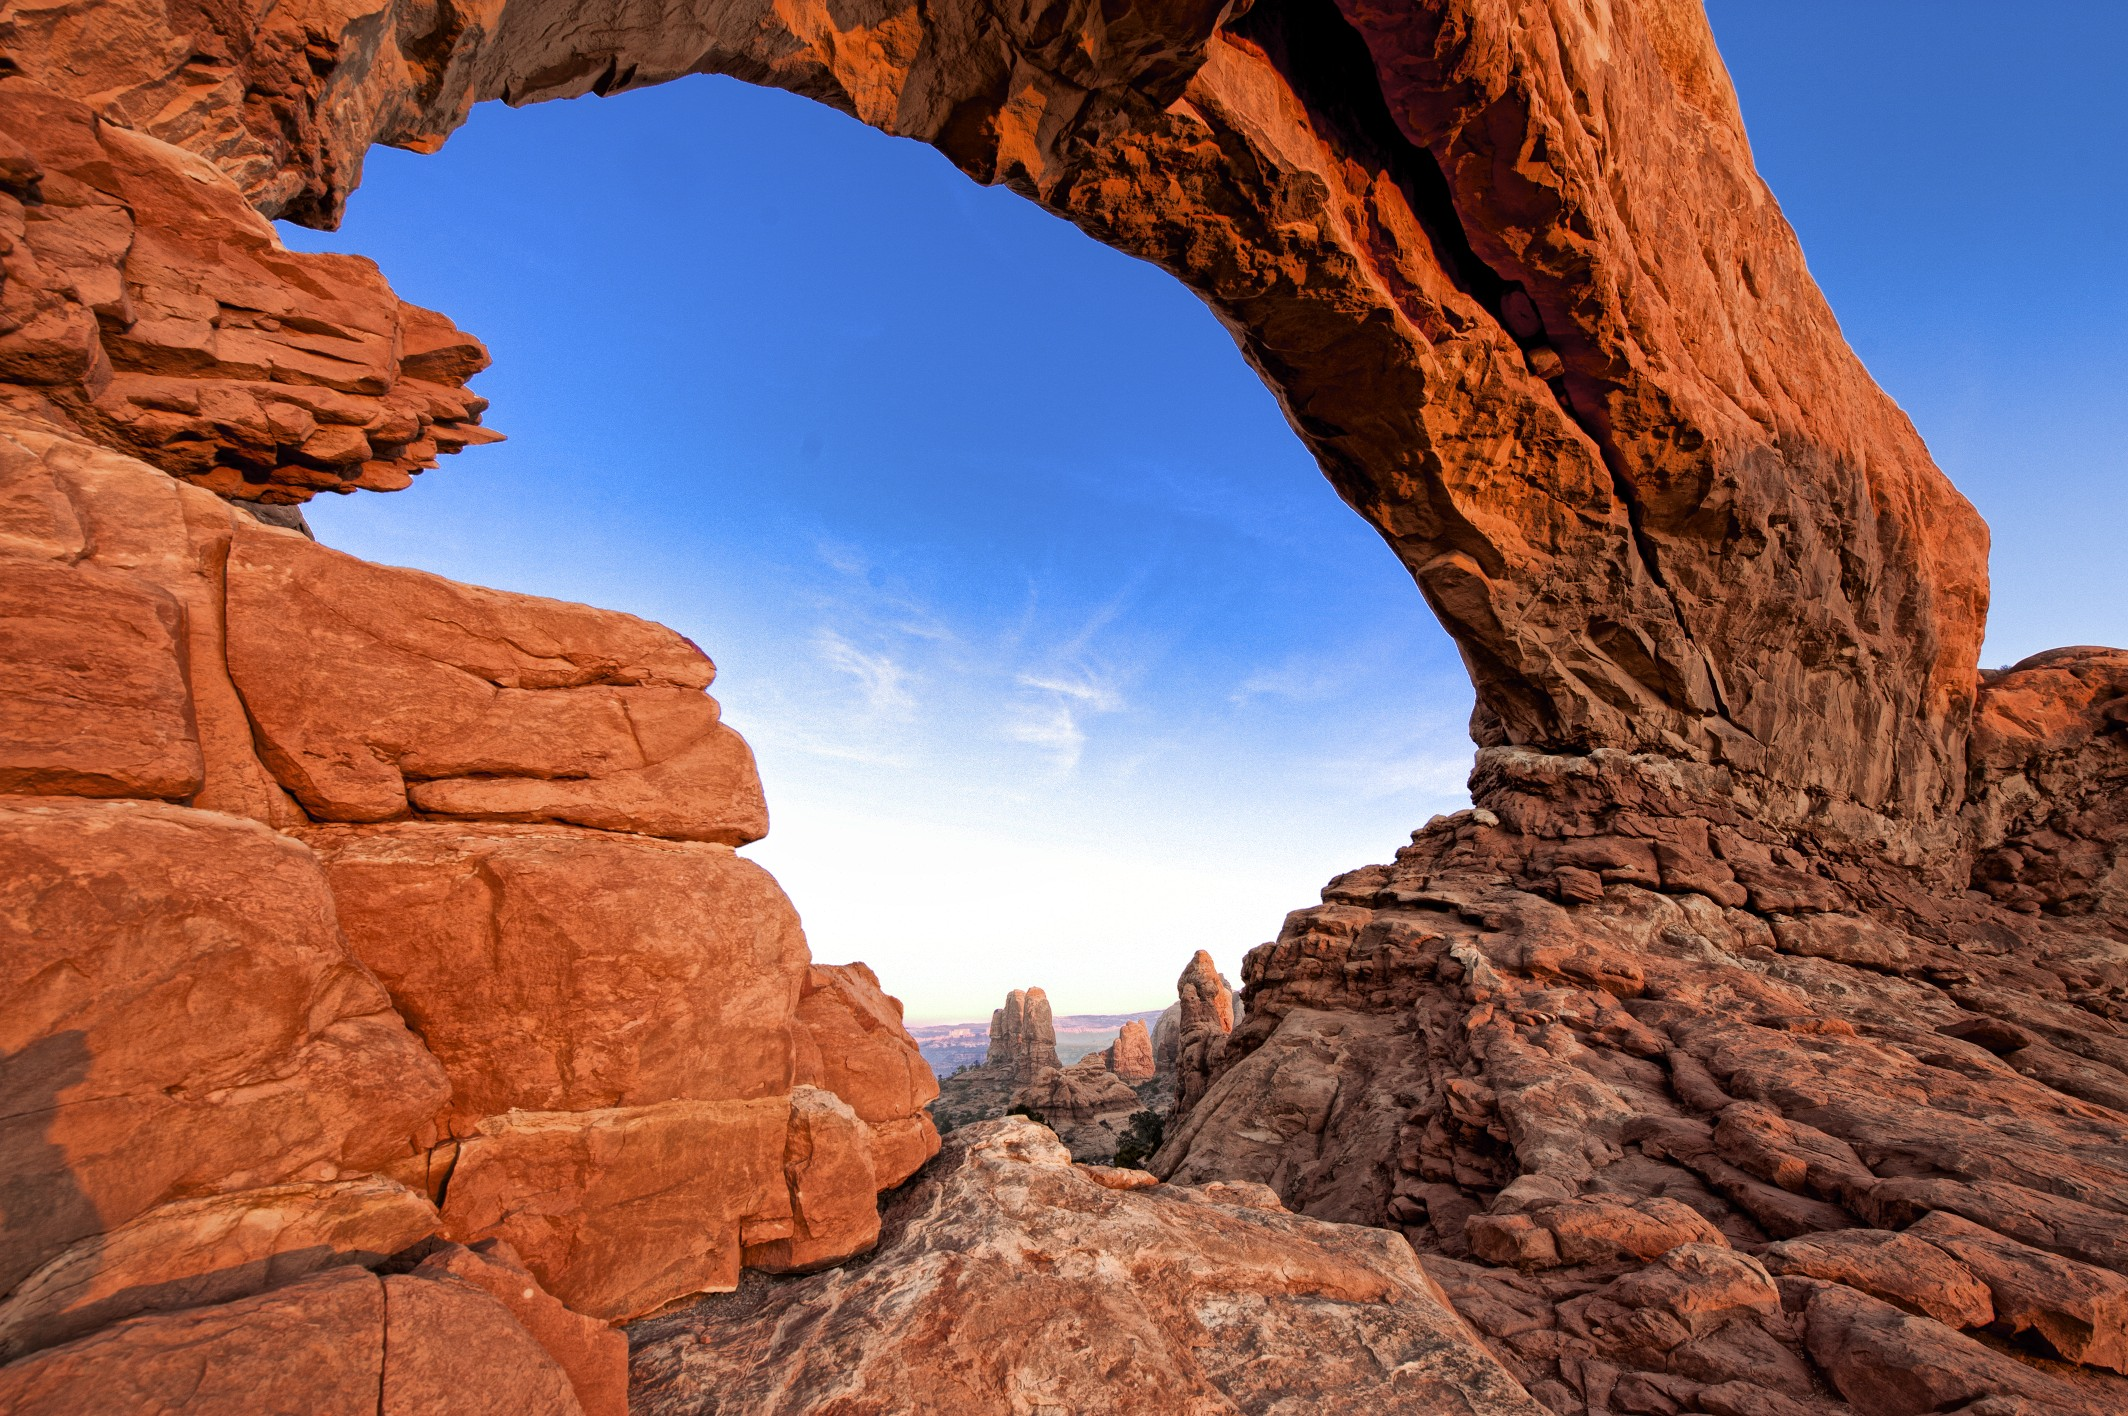 Images shot on location Arches National Park